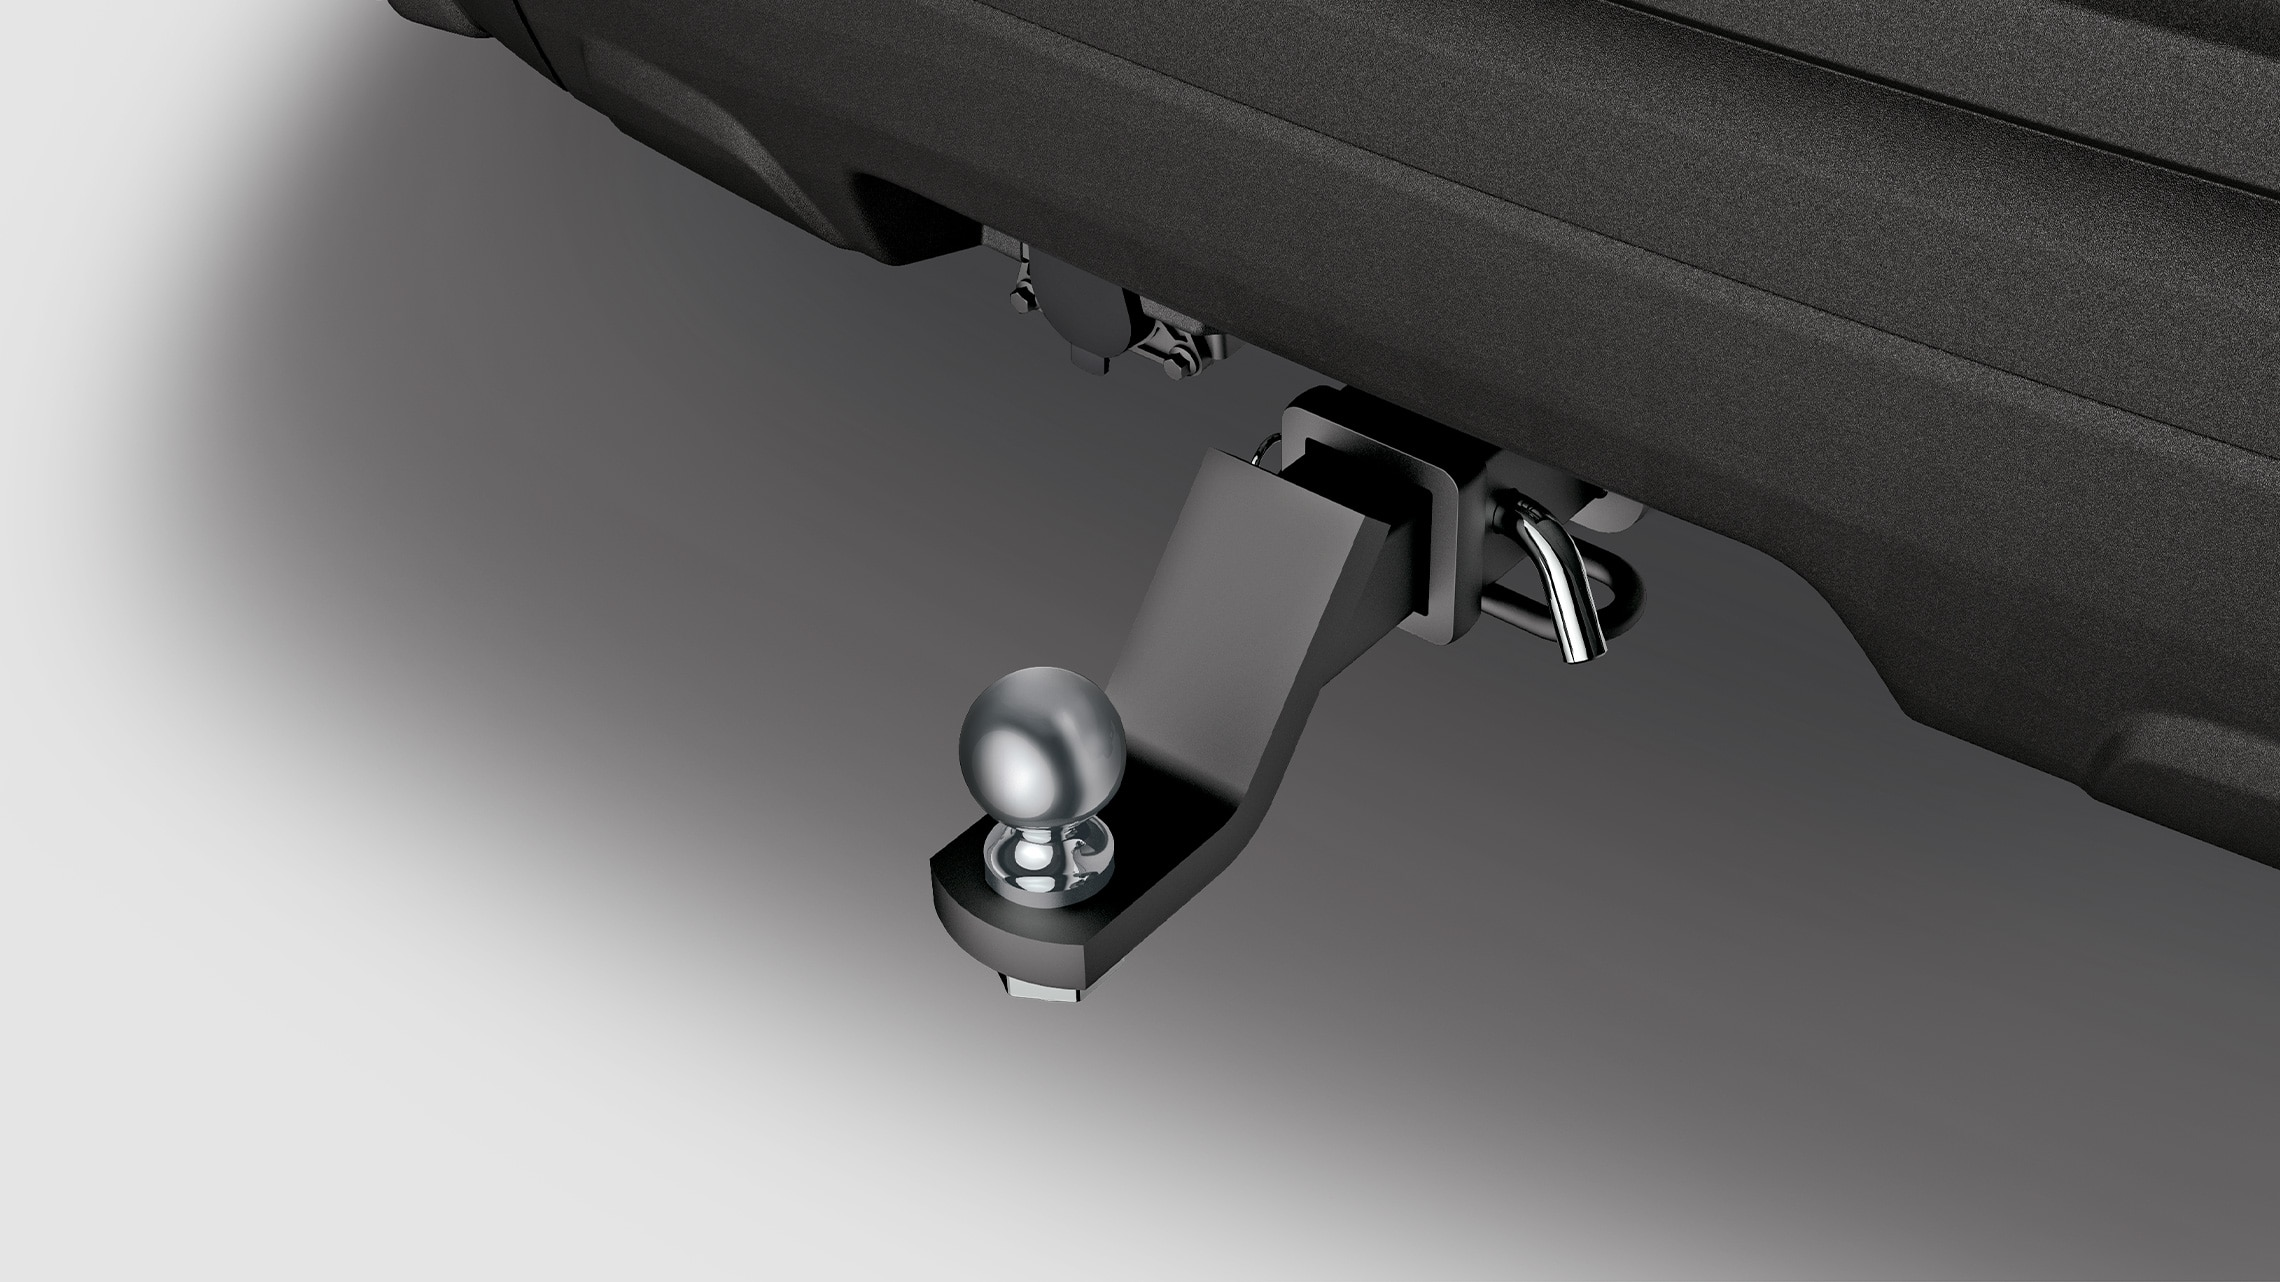 Trailer hitch detail on the 2021 Honda Passport Elite.